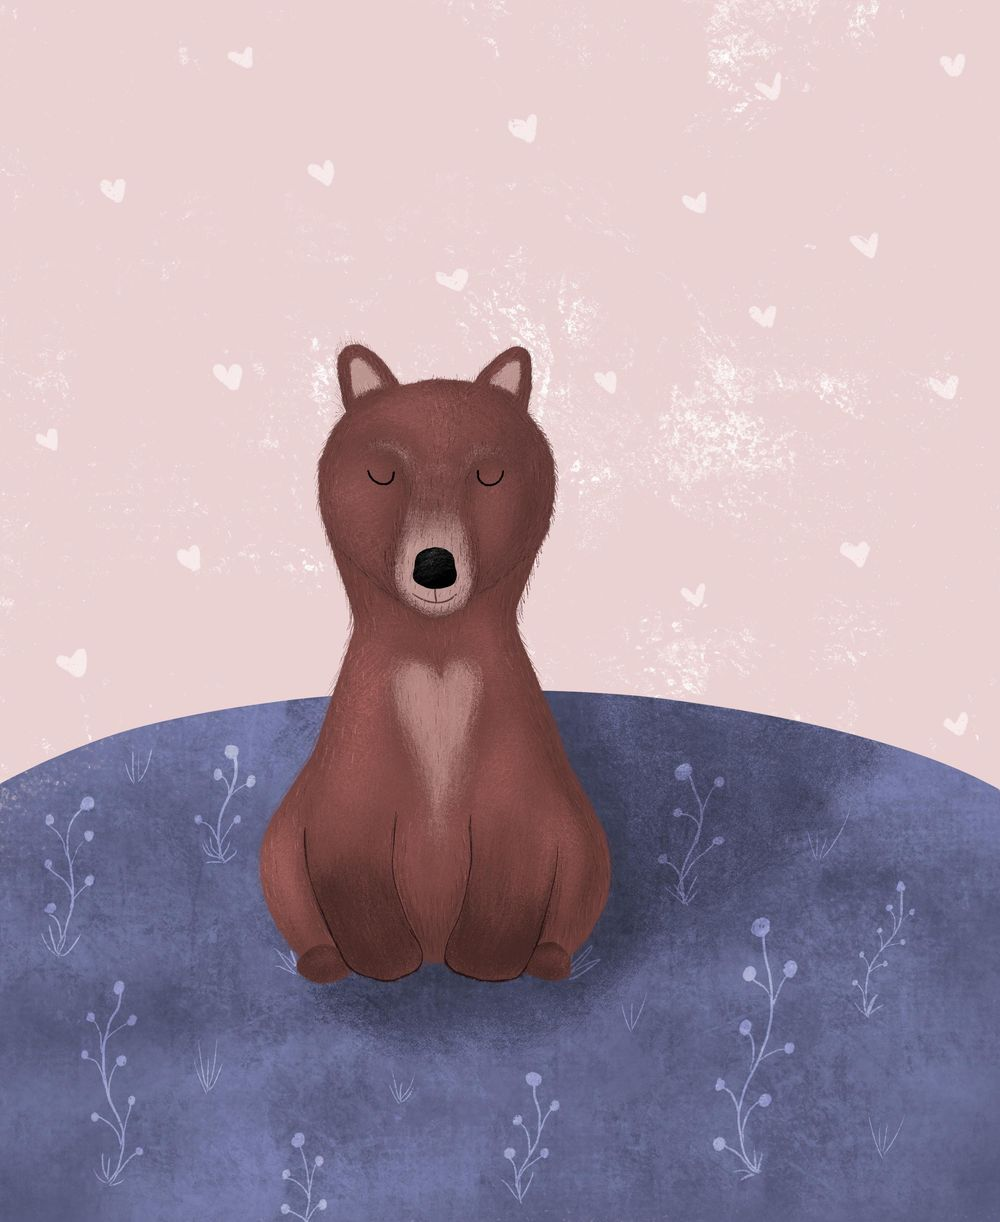 Fox and bear - image 1 - student project